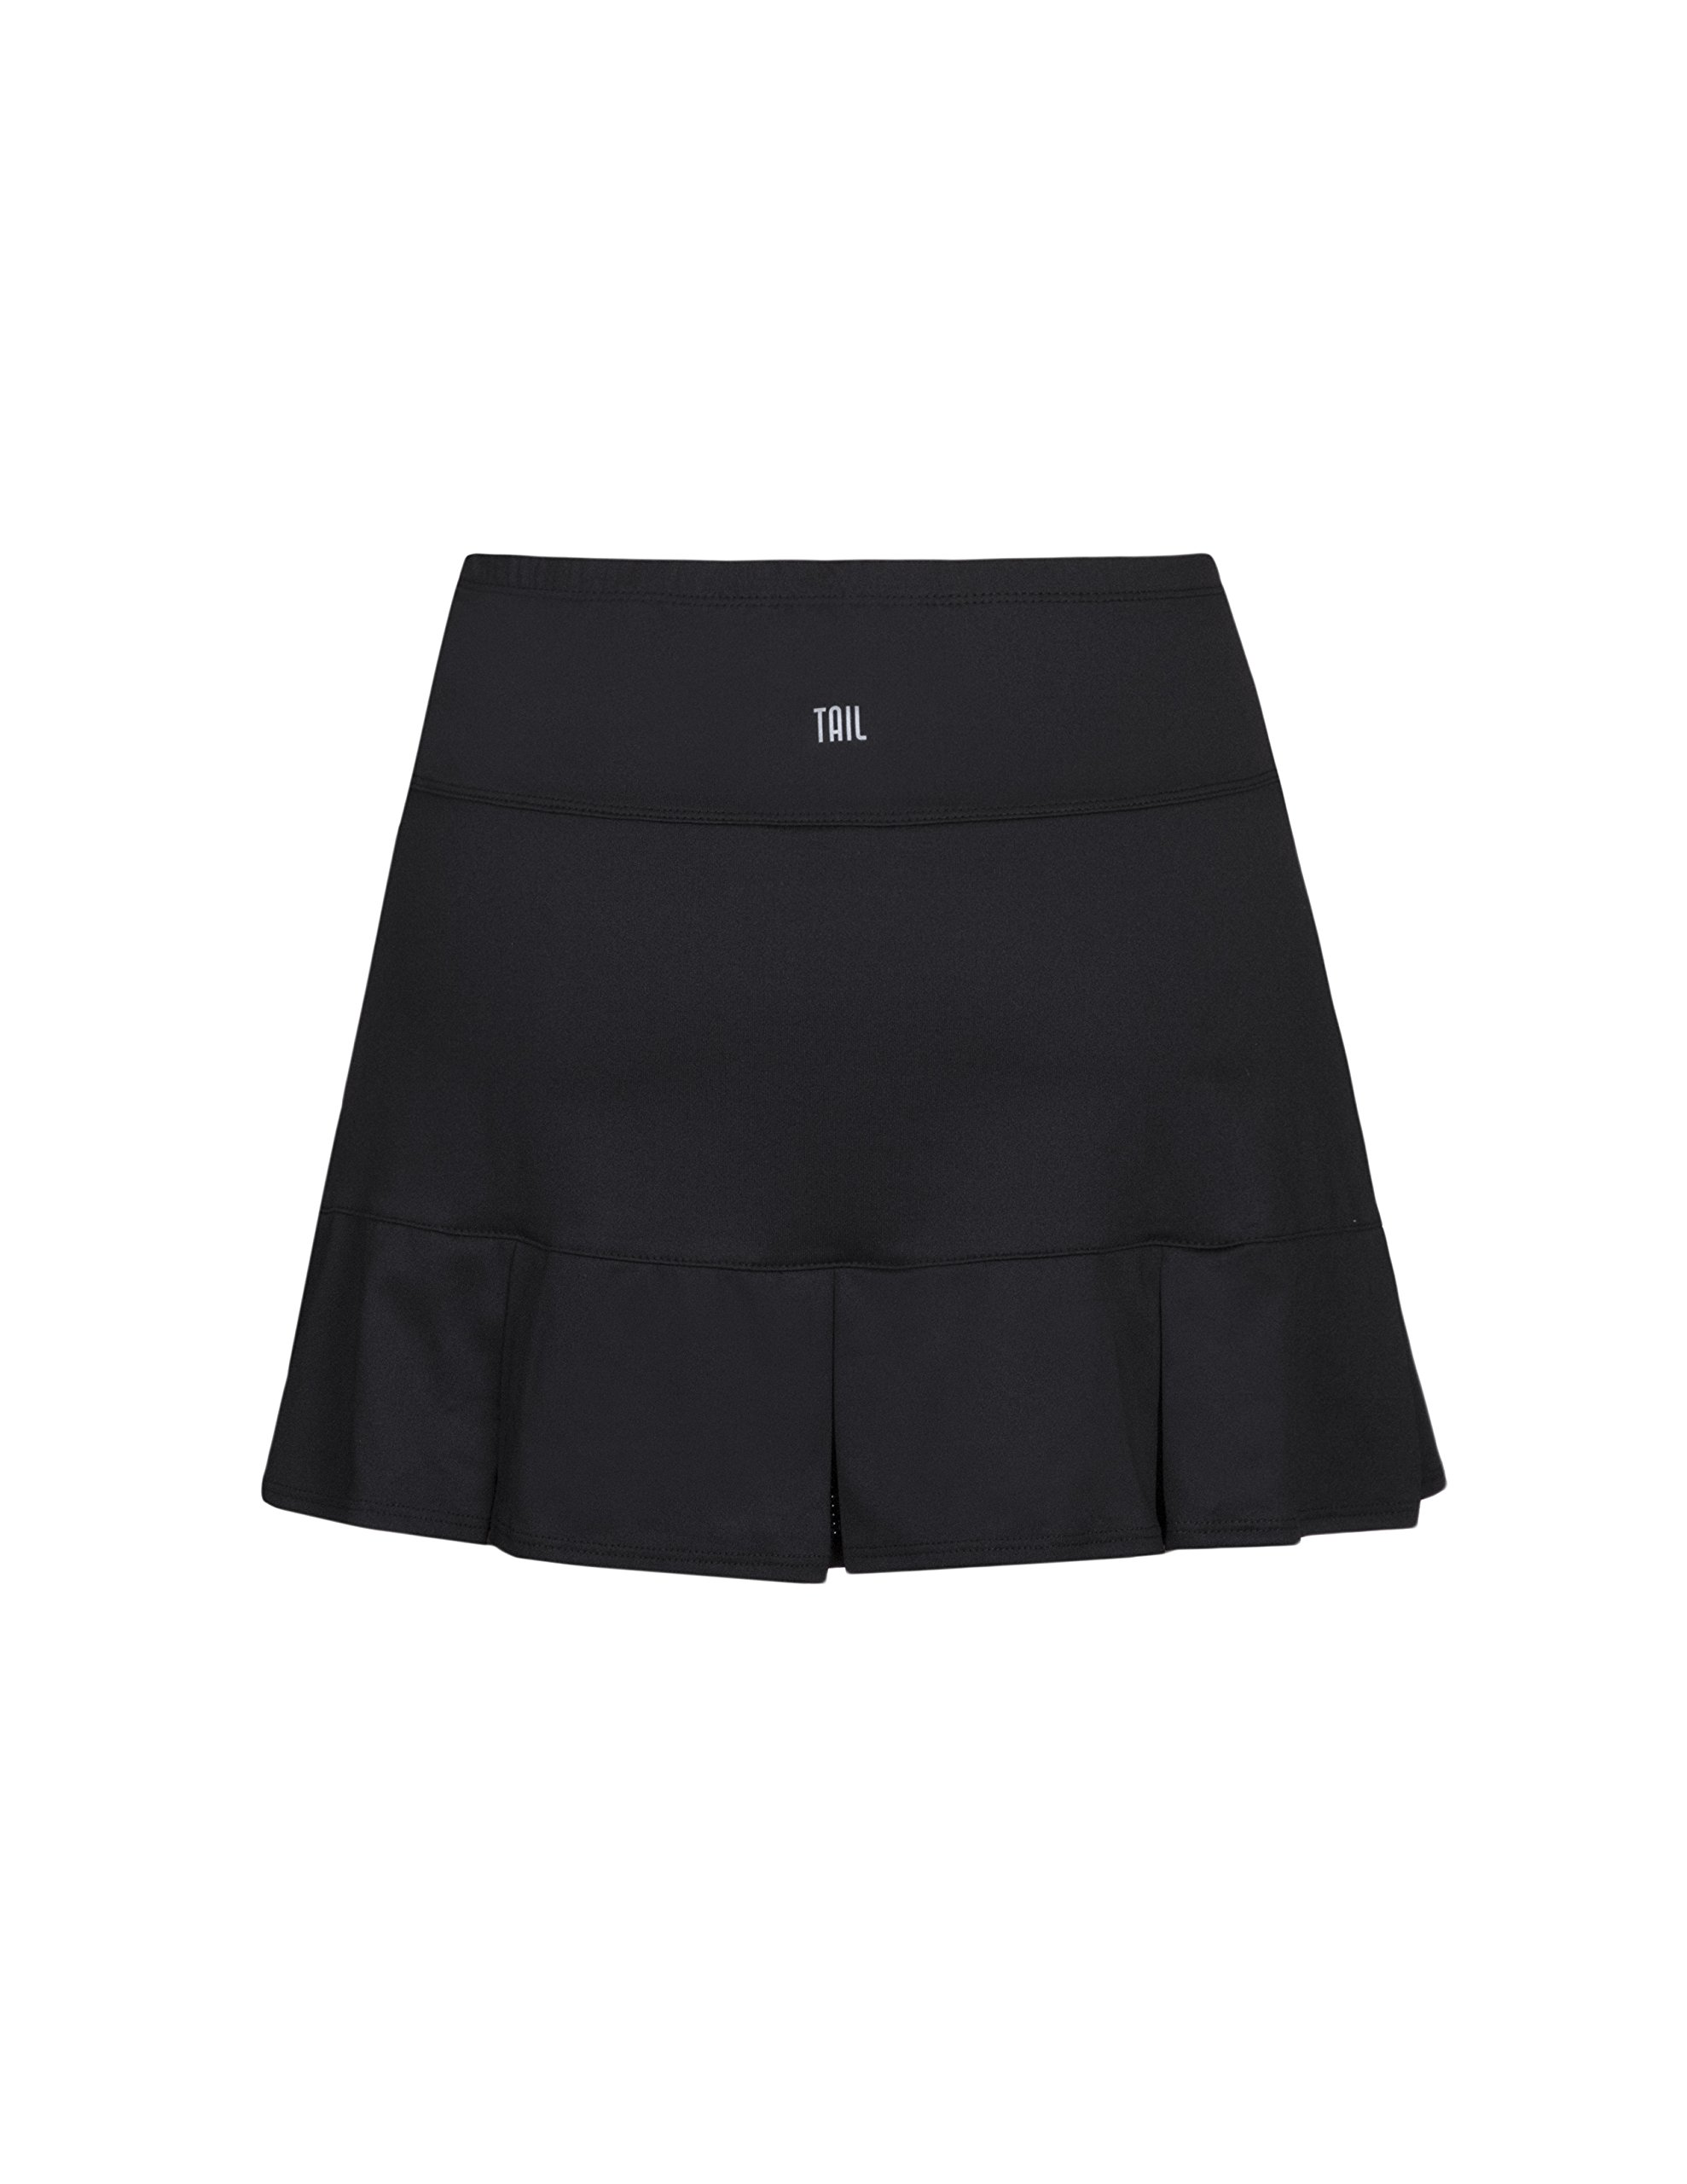 Tail Activewear Women's Doral 14.5 Length Skort XX-Large Black by Tail Activewear (Image #4)